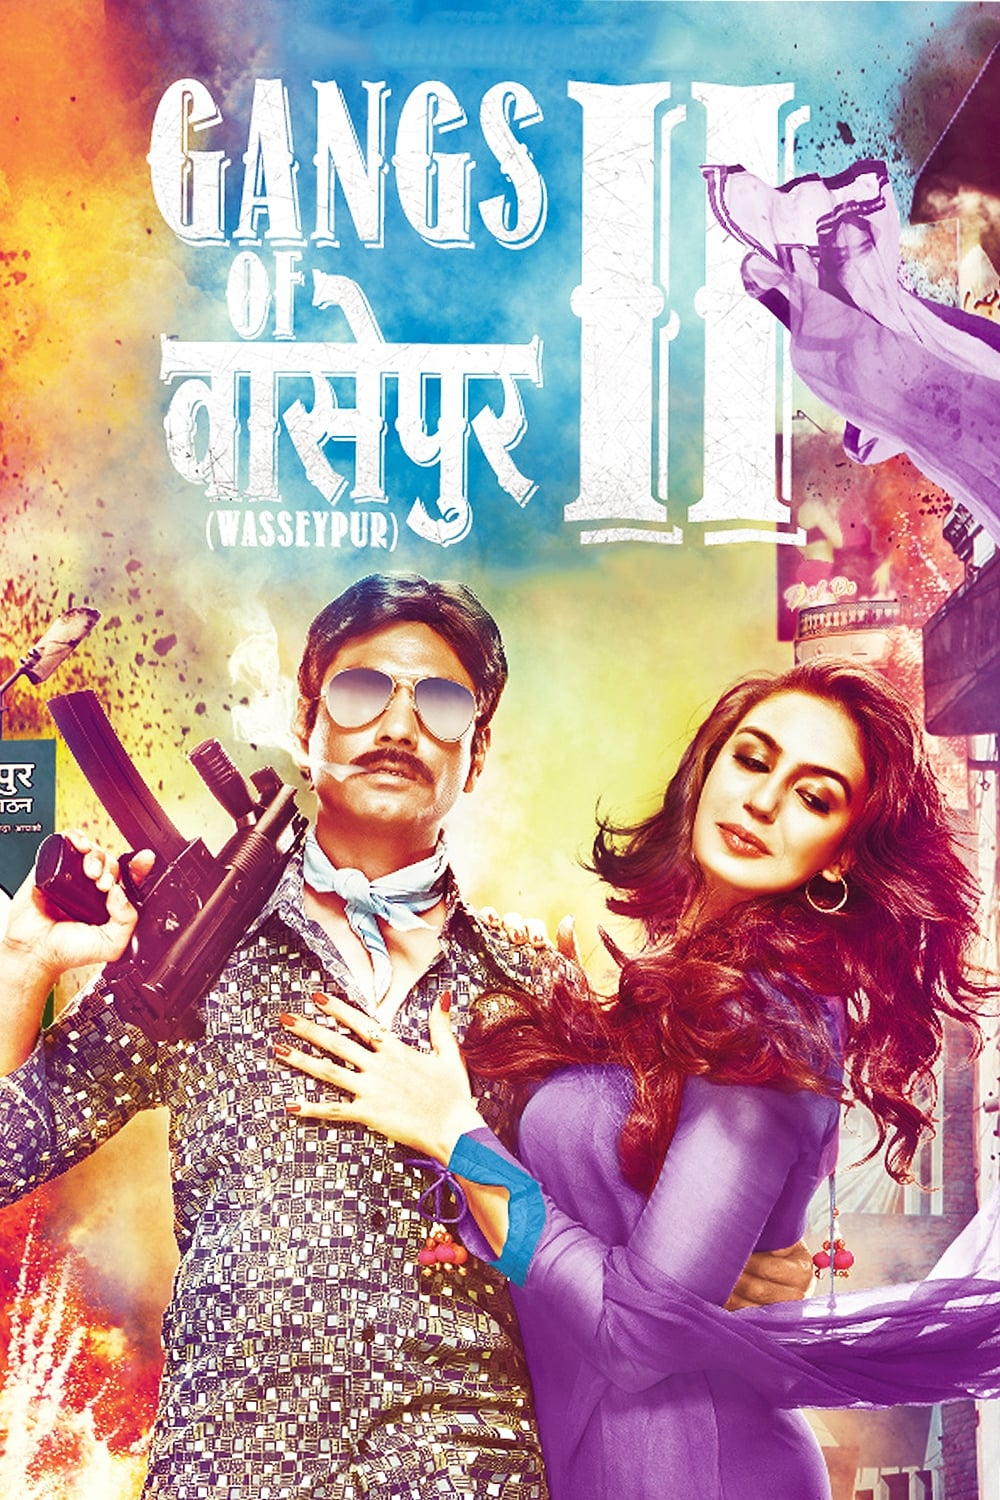 Gangs of Wasseypur – Part 2 2012 BluRay x264 1080p [4.43 GB] 720p [1.39 GB] 480p [560 MB] Hindi DD 5.1 | G-Drive